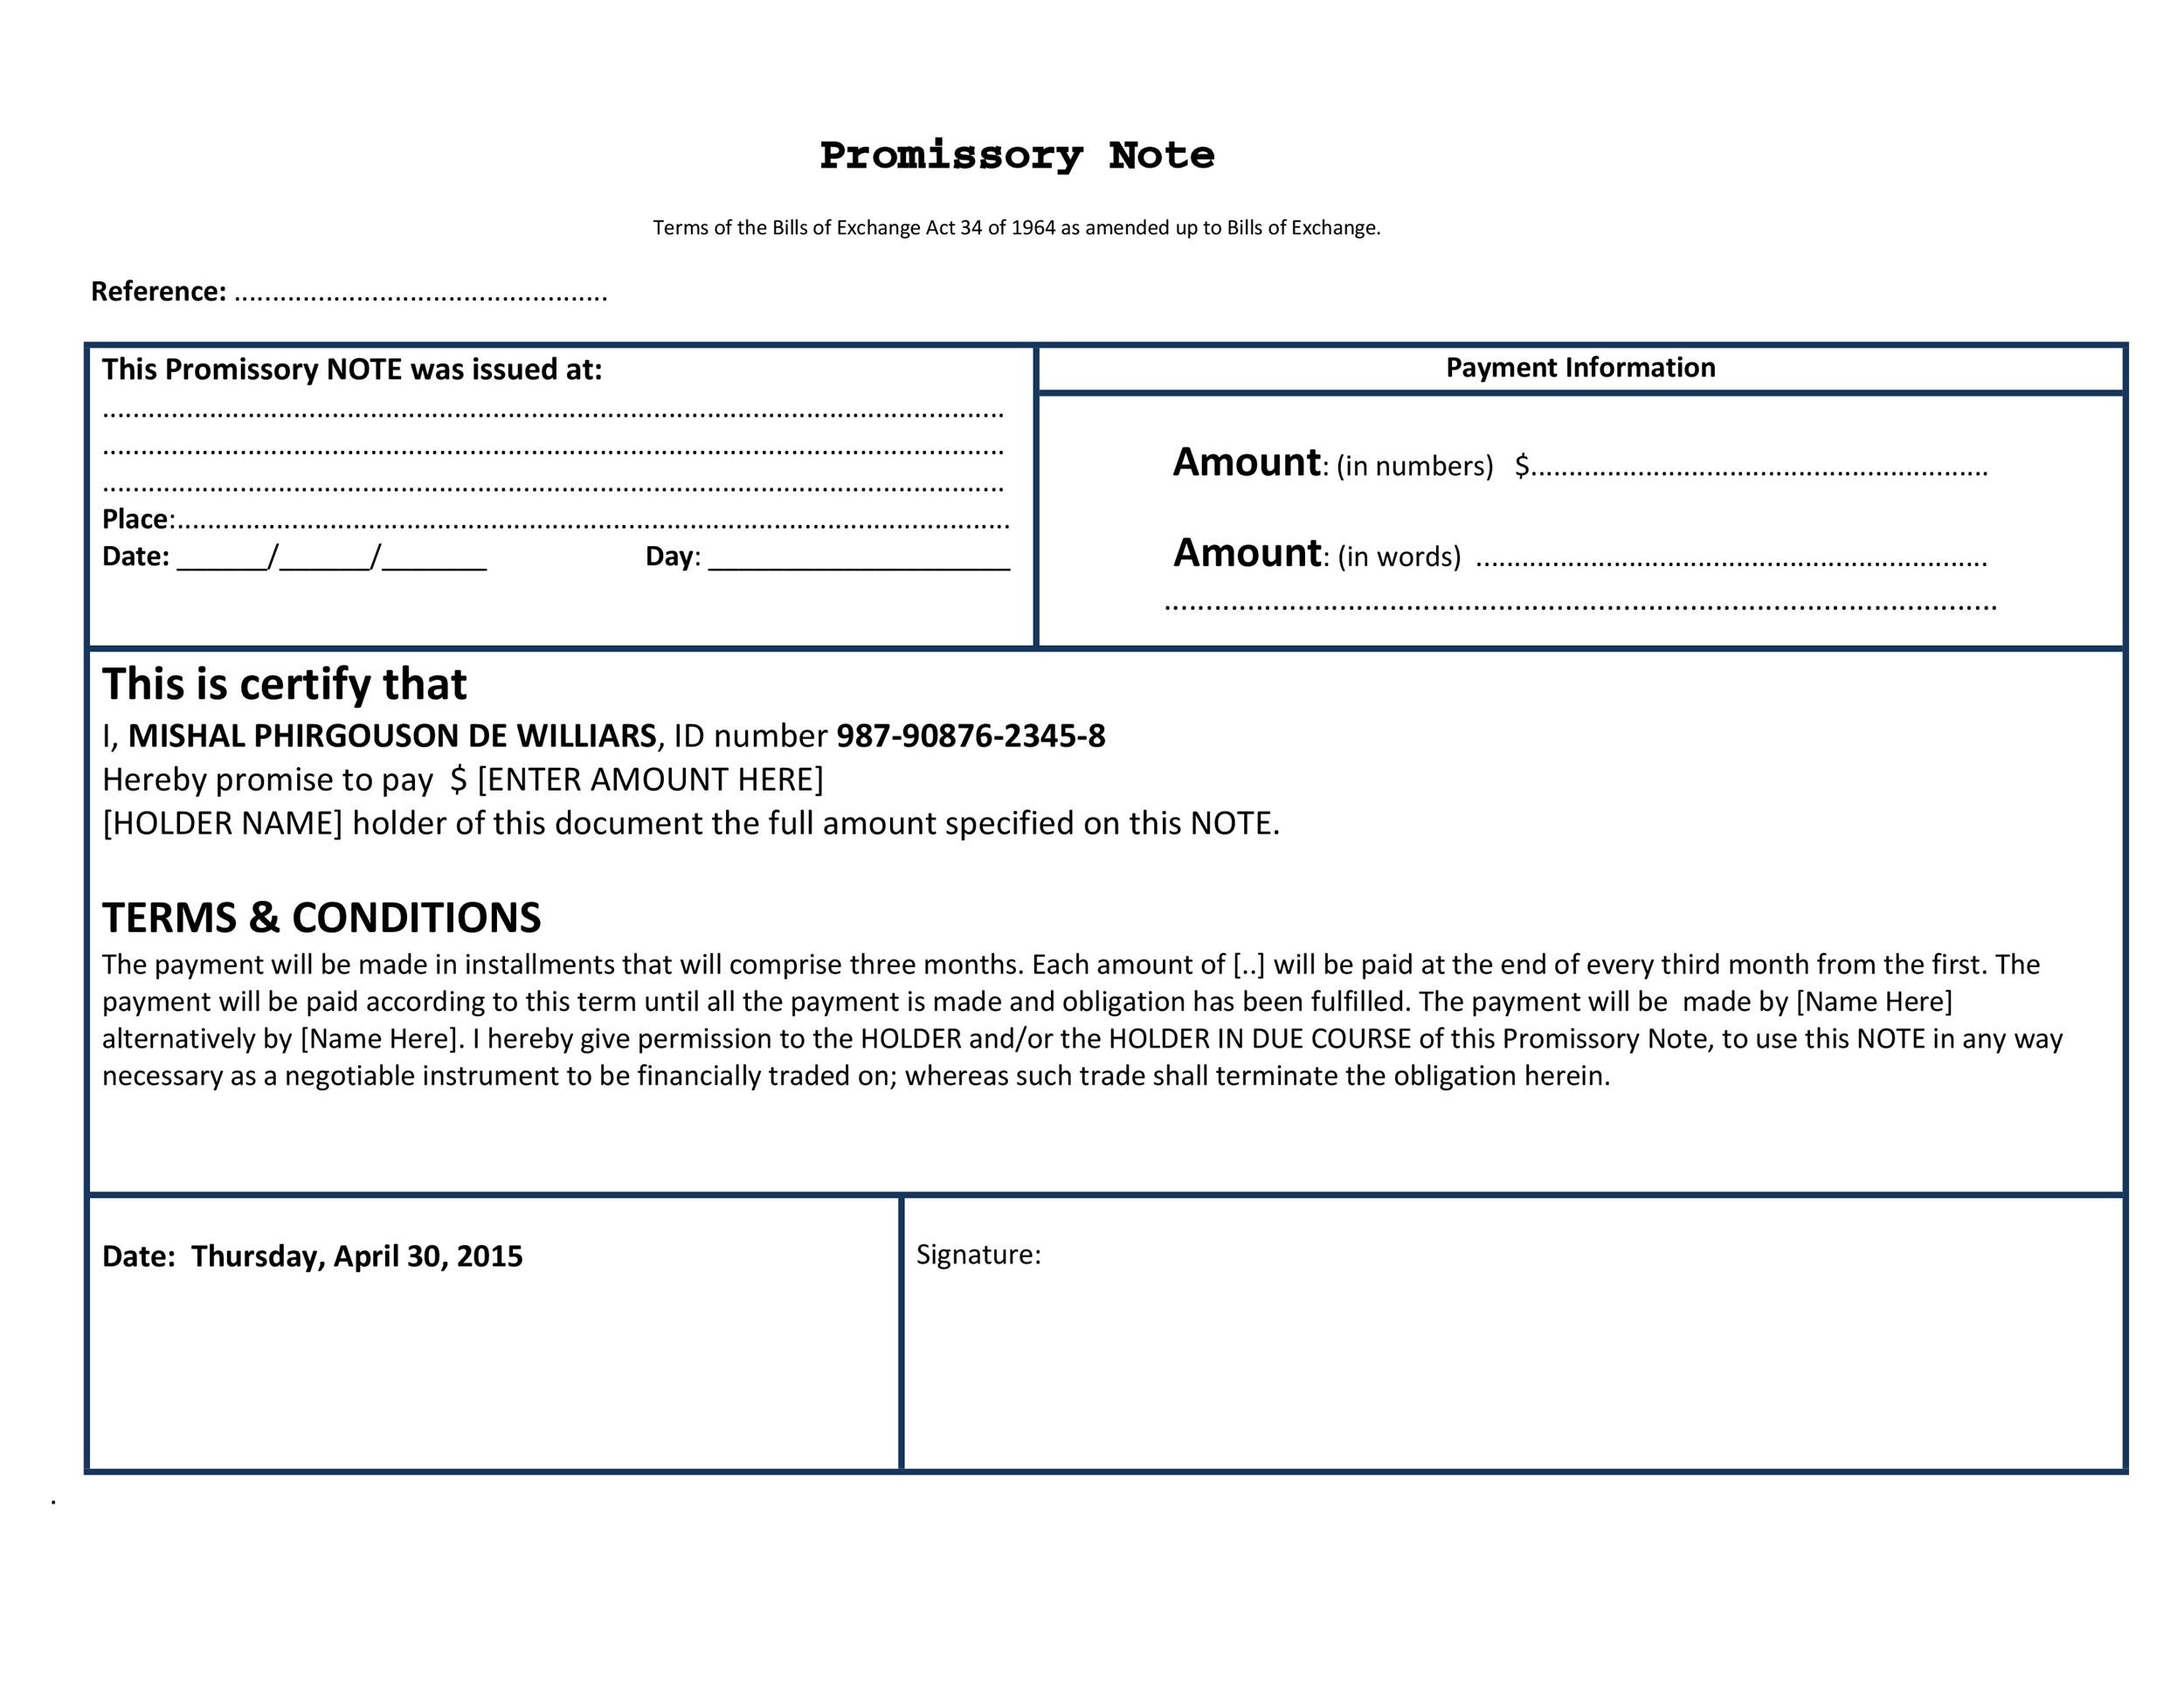 45 FREE Promissory Note Templates  Forms Word  PDF - Template Lab - promissory note sample pdf